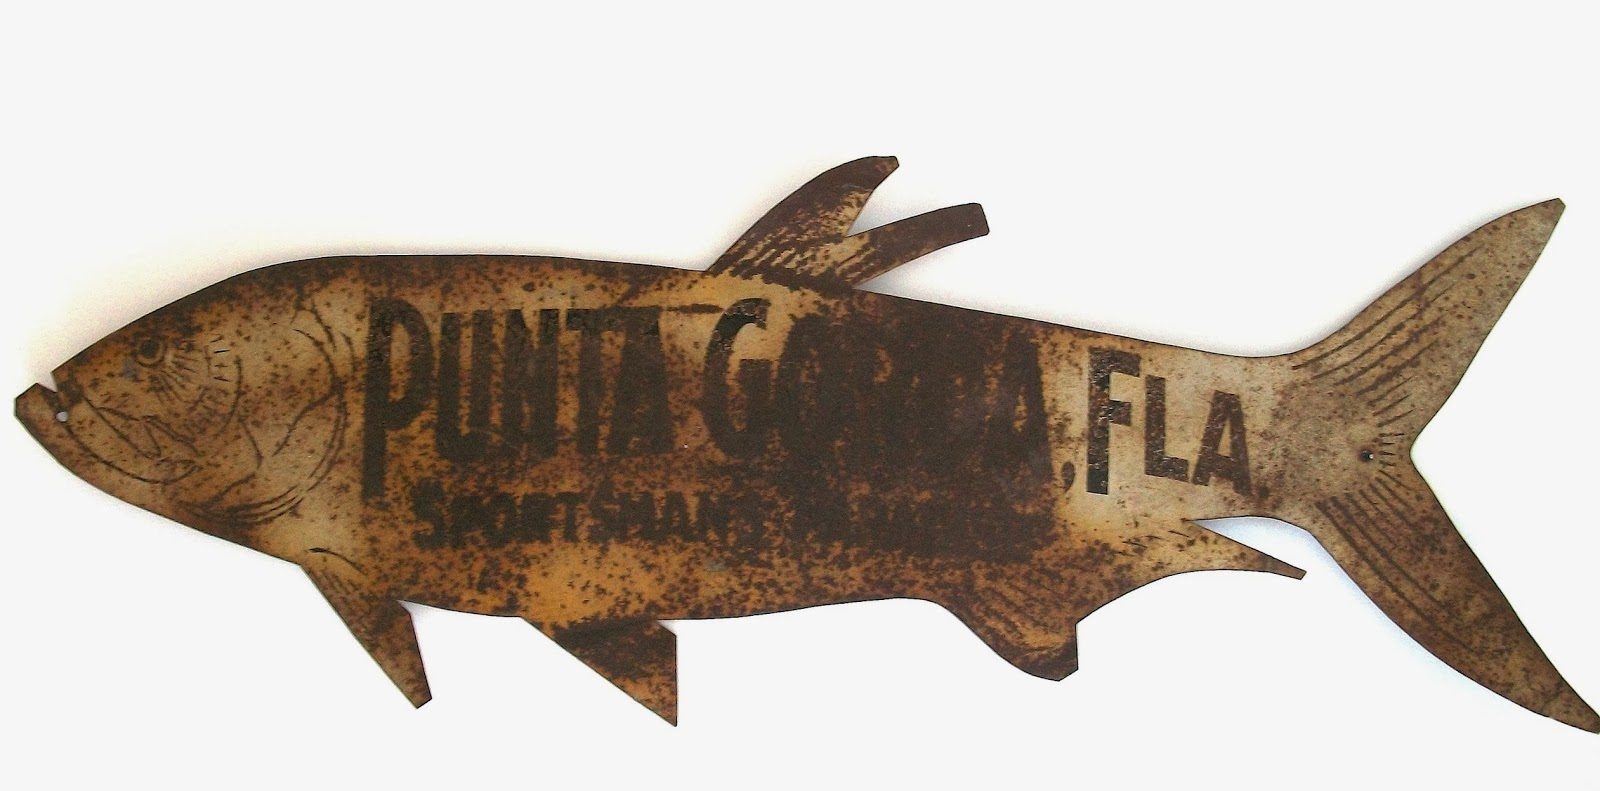 Lots Of Folk Art Fish Signs Are Fake I Have No Idea Why But Guess Unscrupulous Antique Dealers Like To Reel In A Catch At Some Those